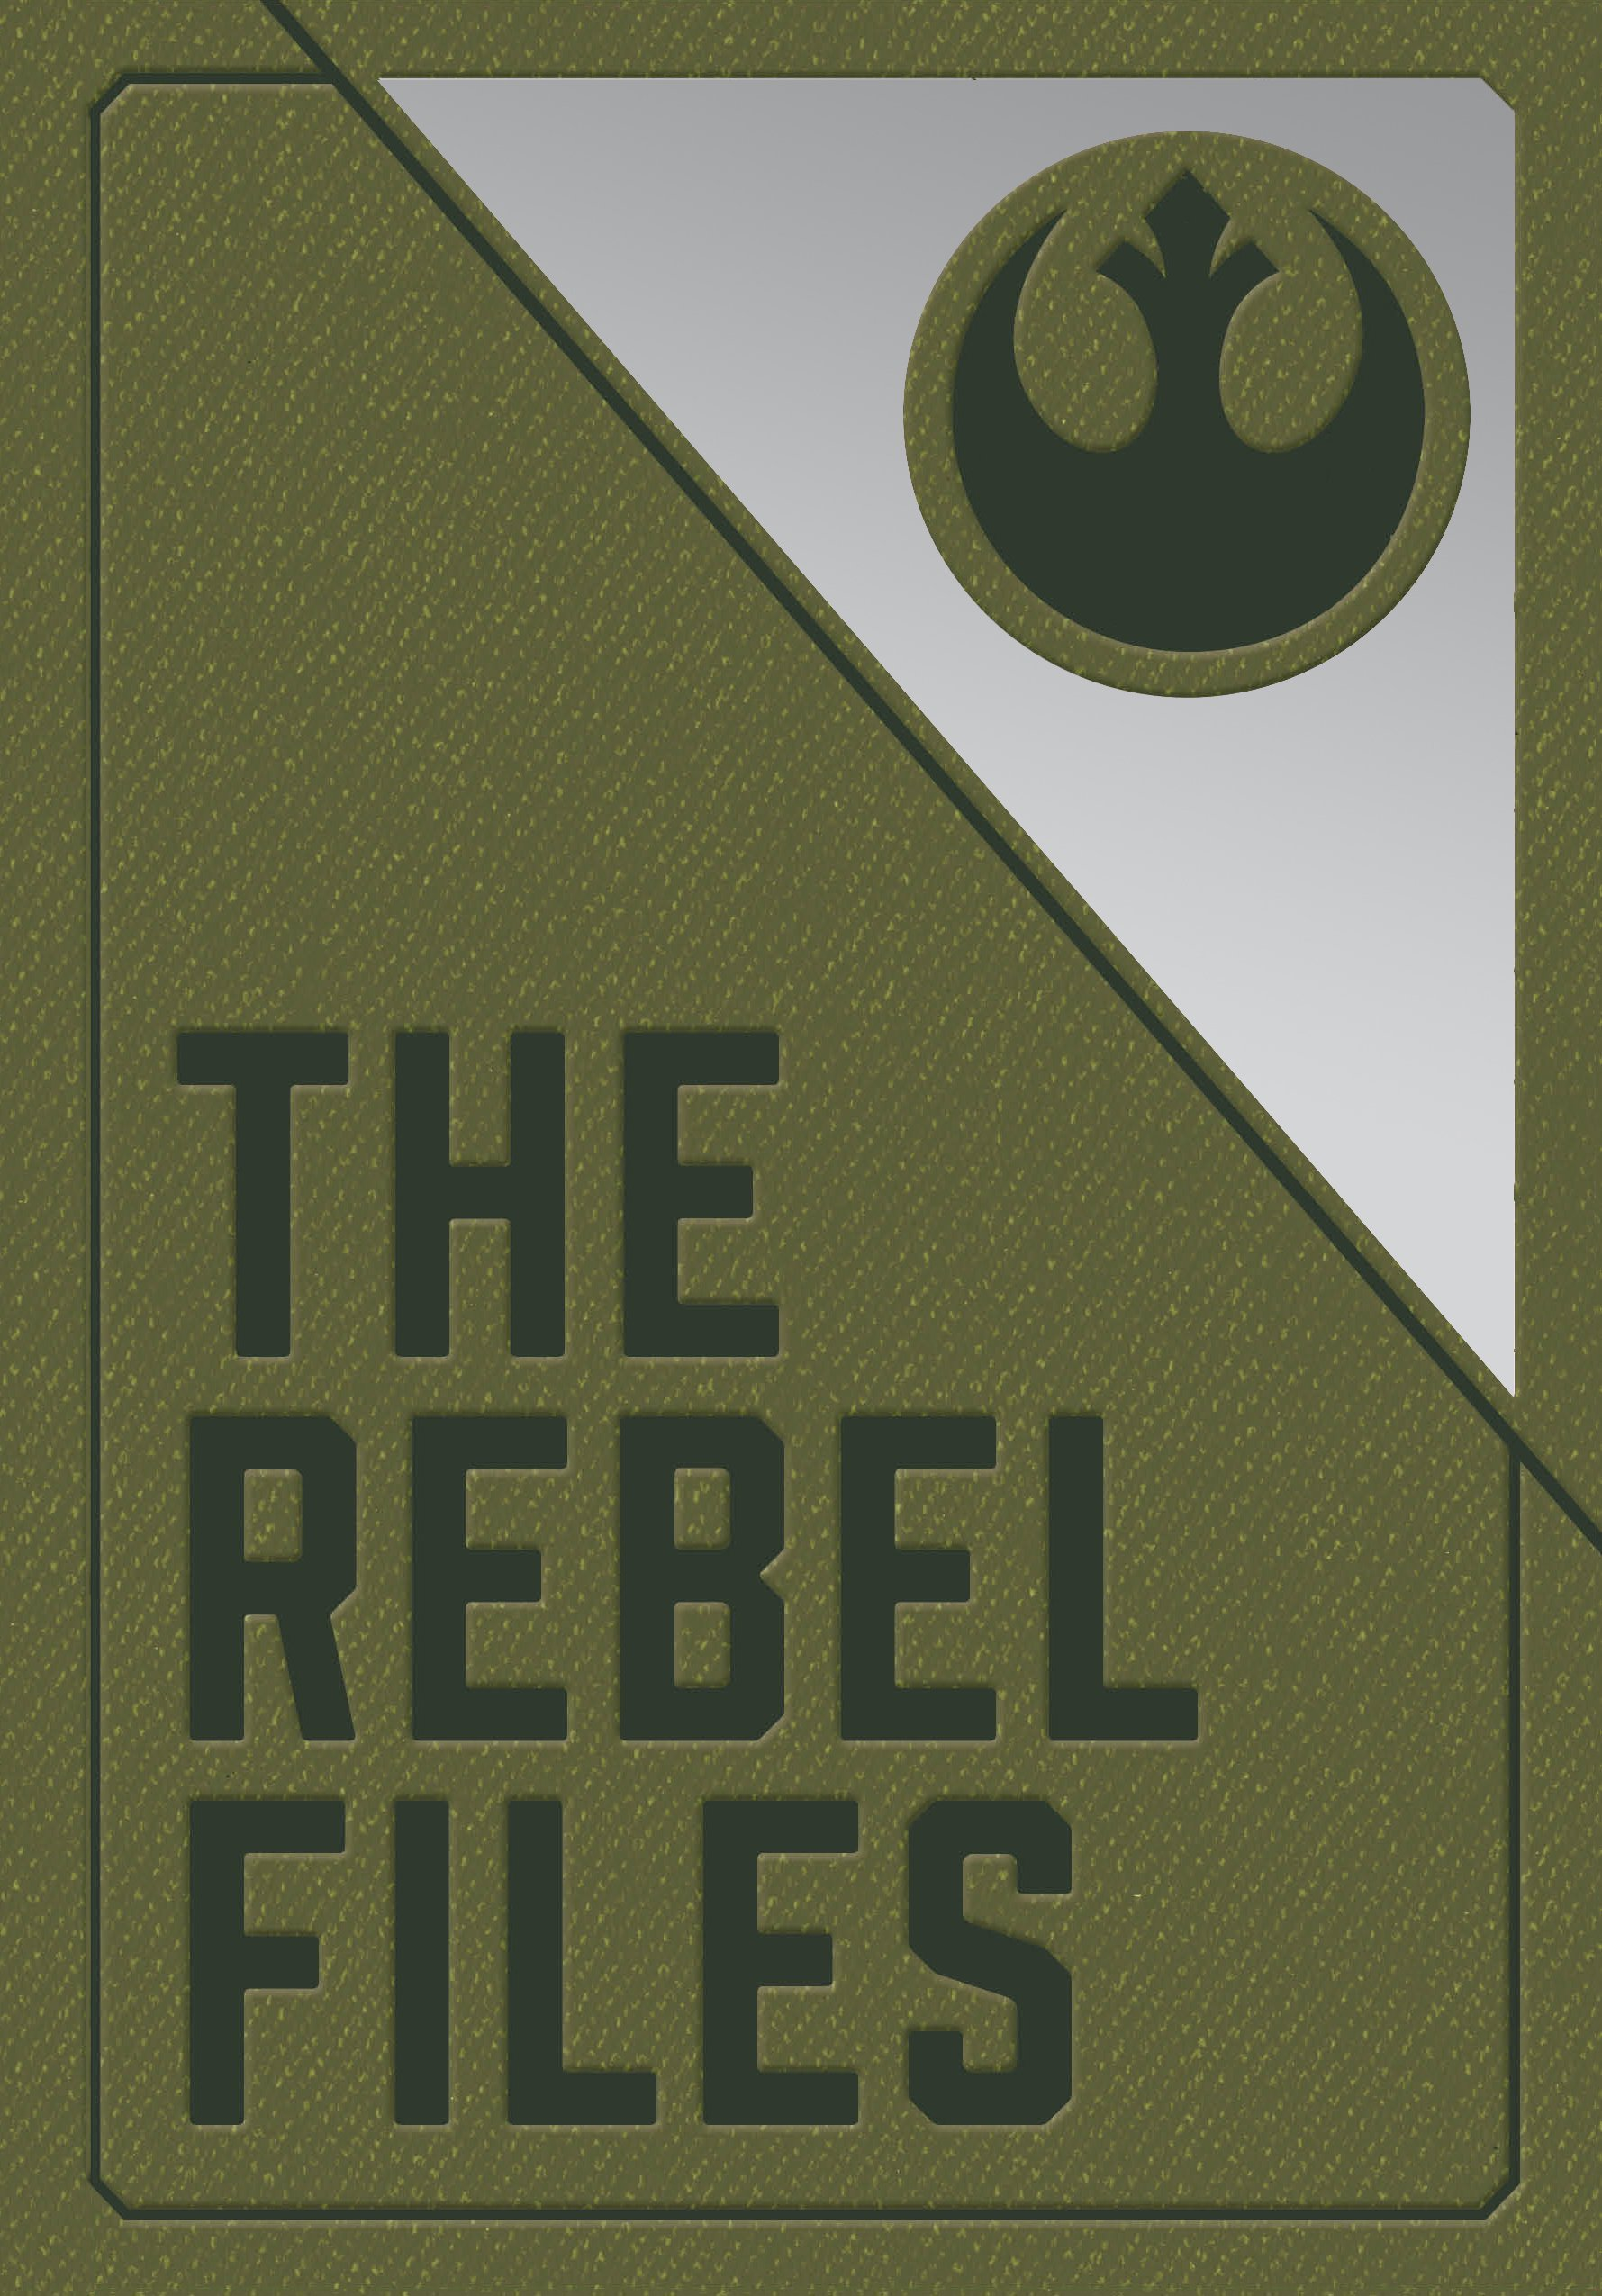 Star Wars Rebel Files amazon